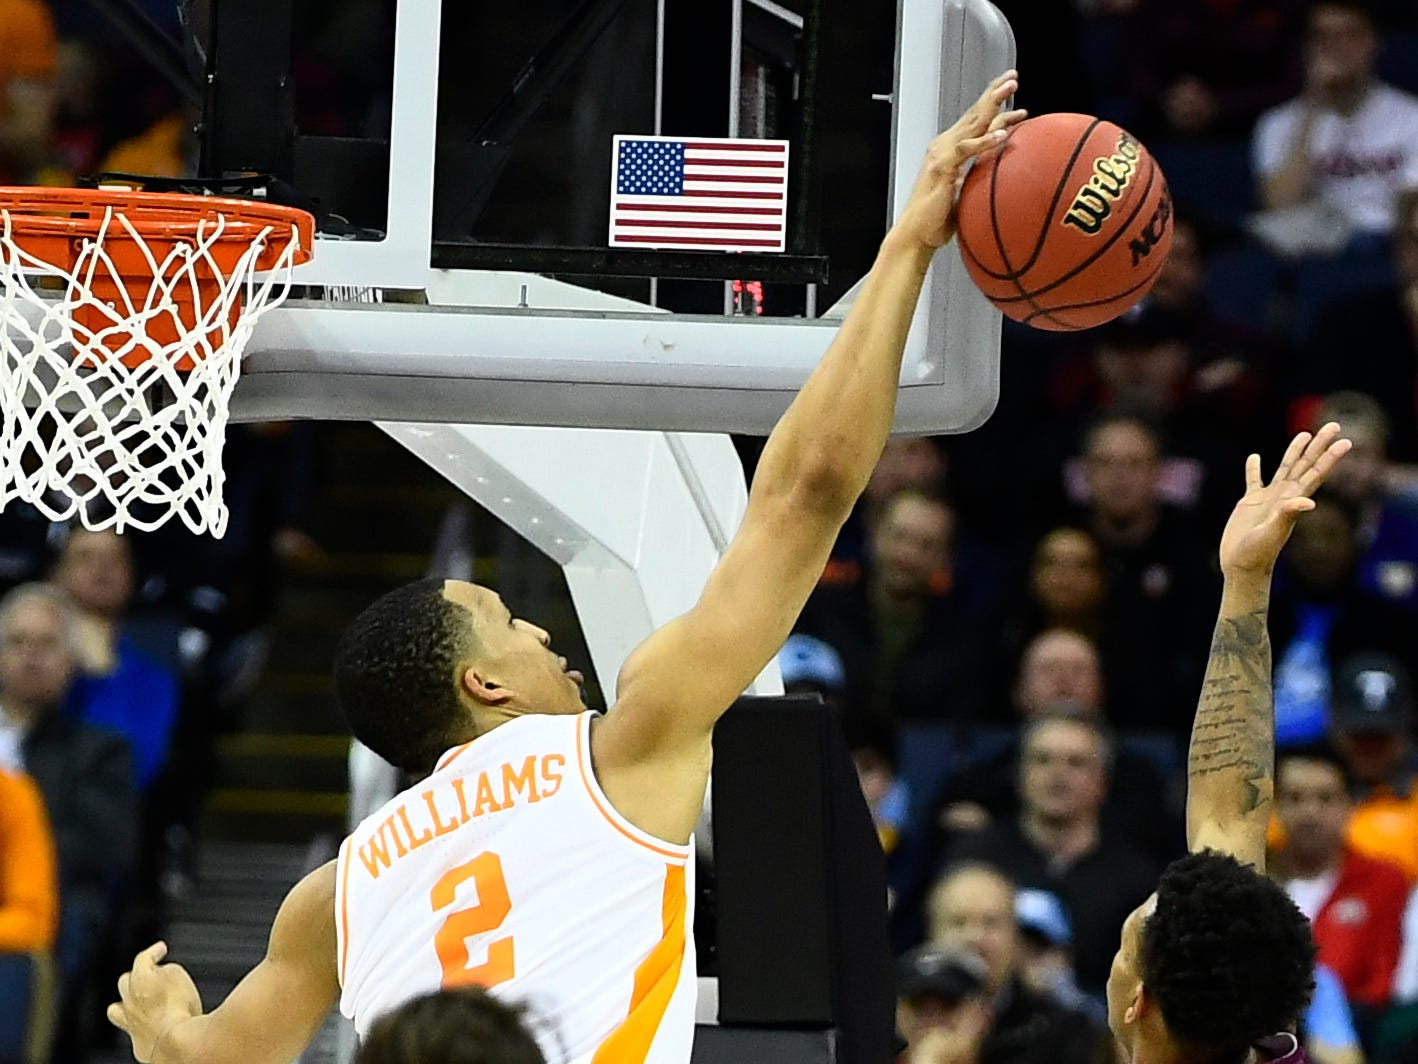 Tennessee forward Grant Williams (2) blocks a Colgate shot during their first round game in the NCAA Tournament at Nationwide Arena in Columbus, Ohio, on Friday, March 22, 2019.